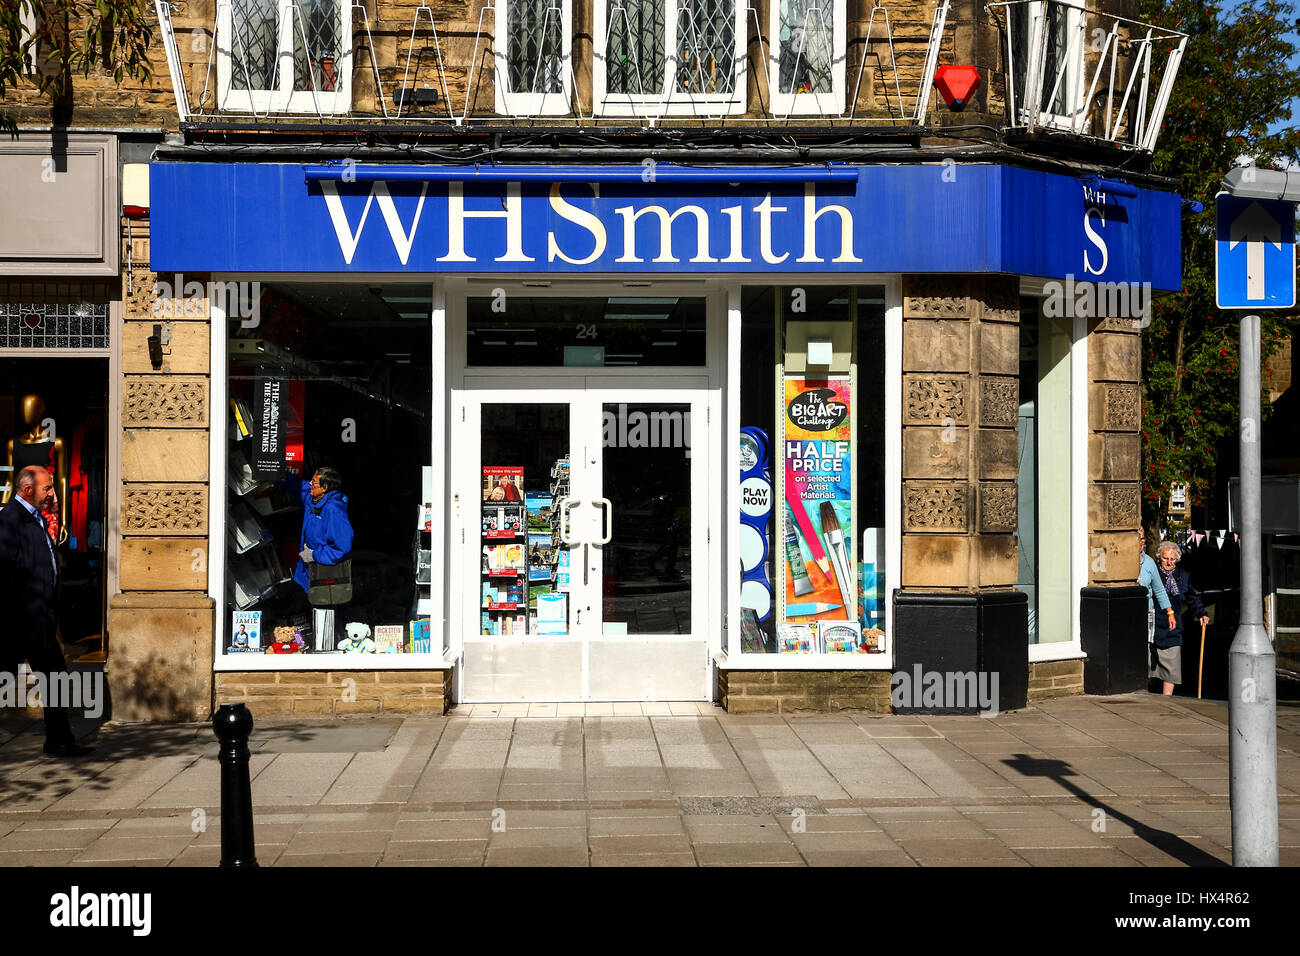 Stationary shopping stock photos stationary shopping stock images ilkley yorkshire local branch of wh smith stationary and news vendors stock image solutioingenieria Choice Image